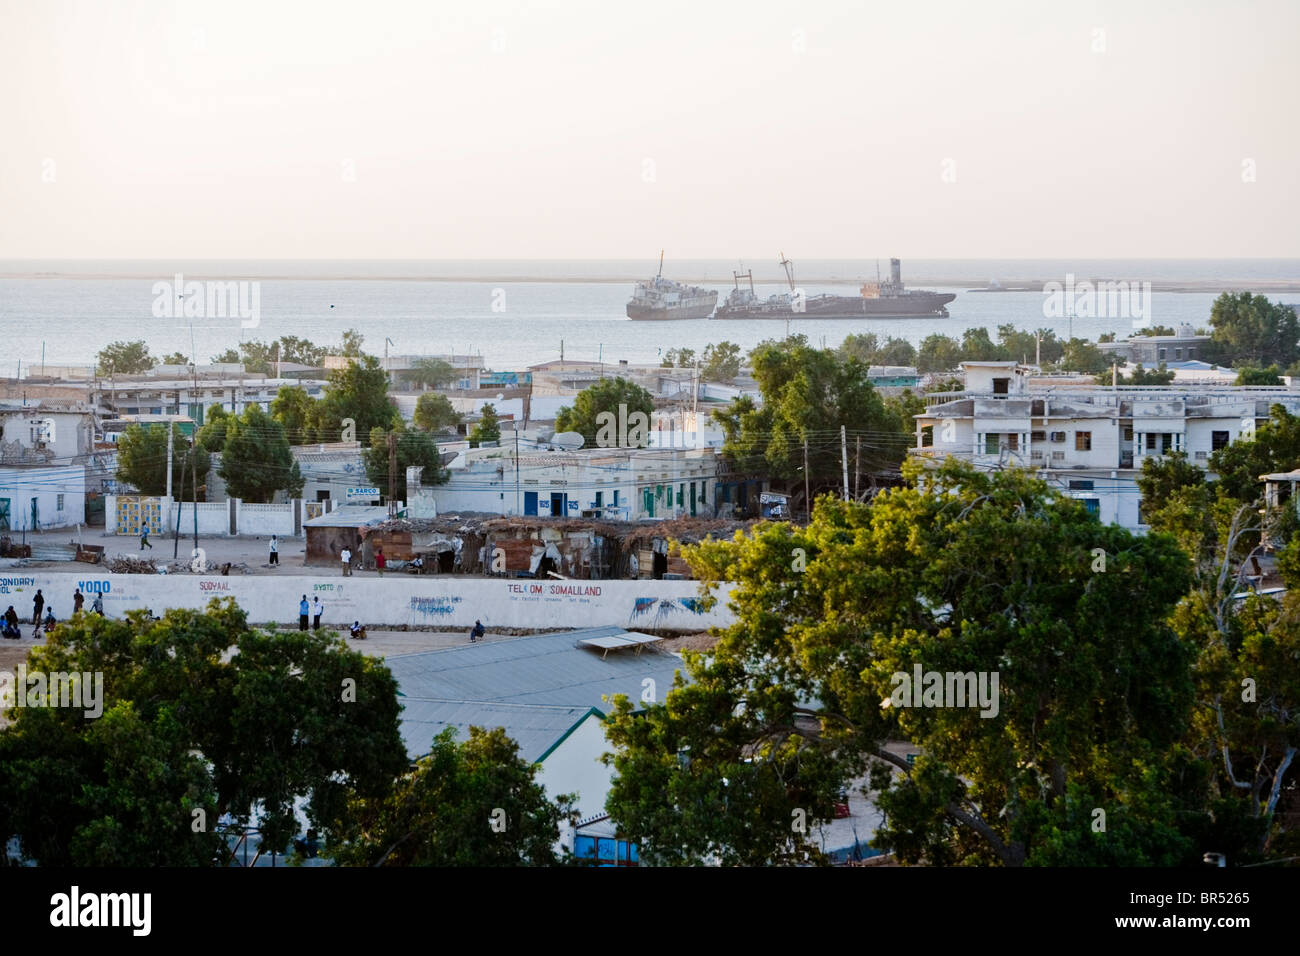 View of the town of Berbera with abandoned boats in the background. - Stock Image